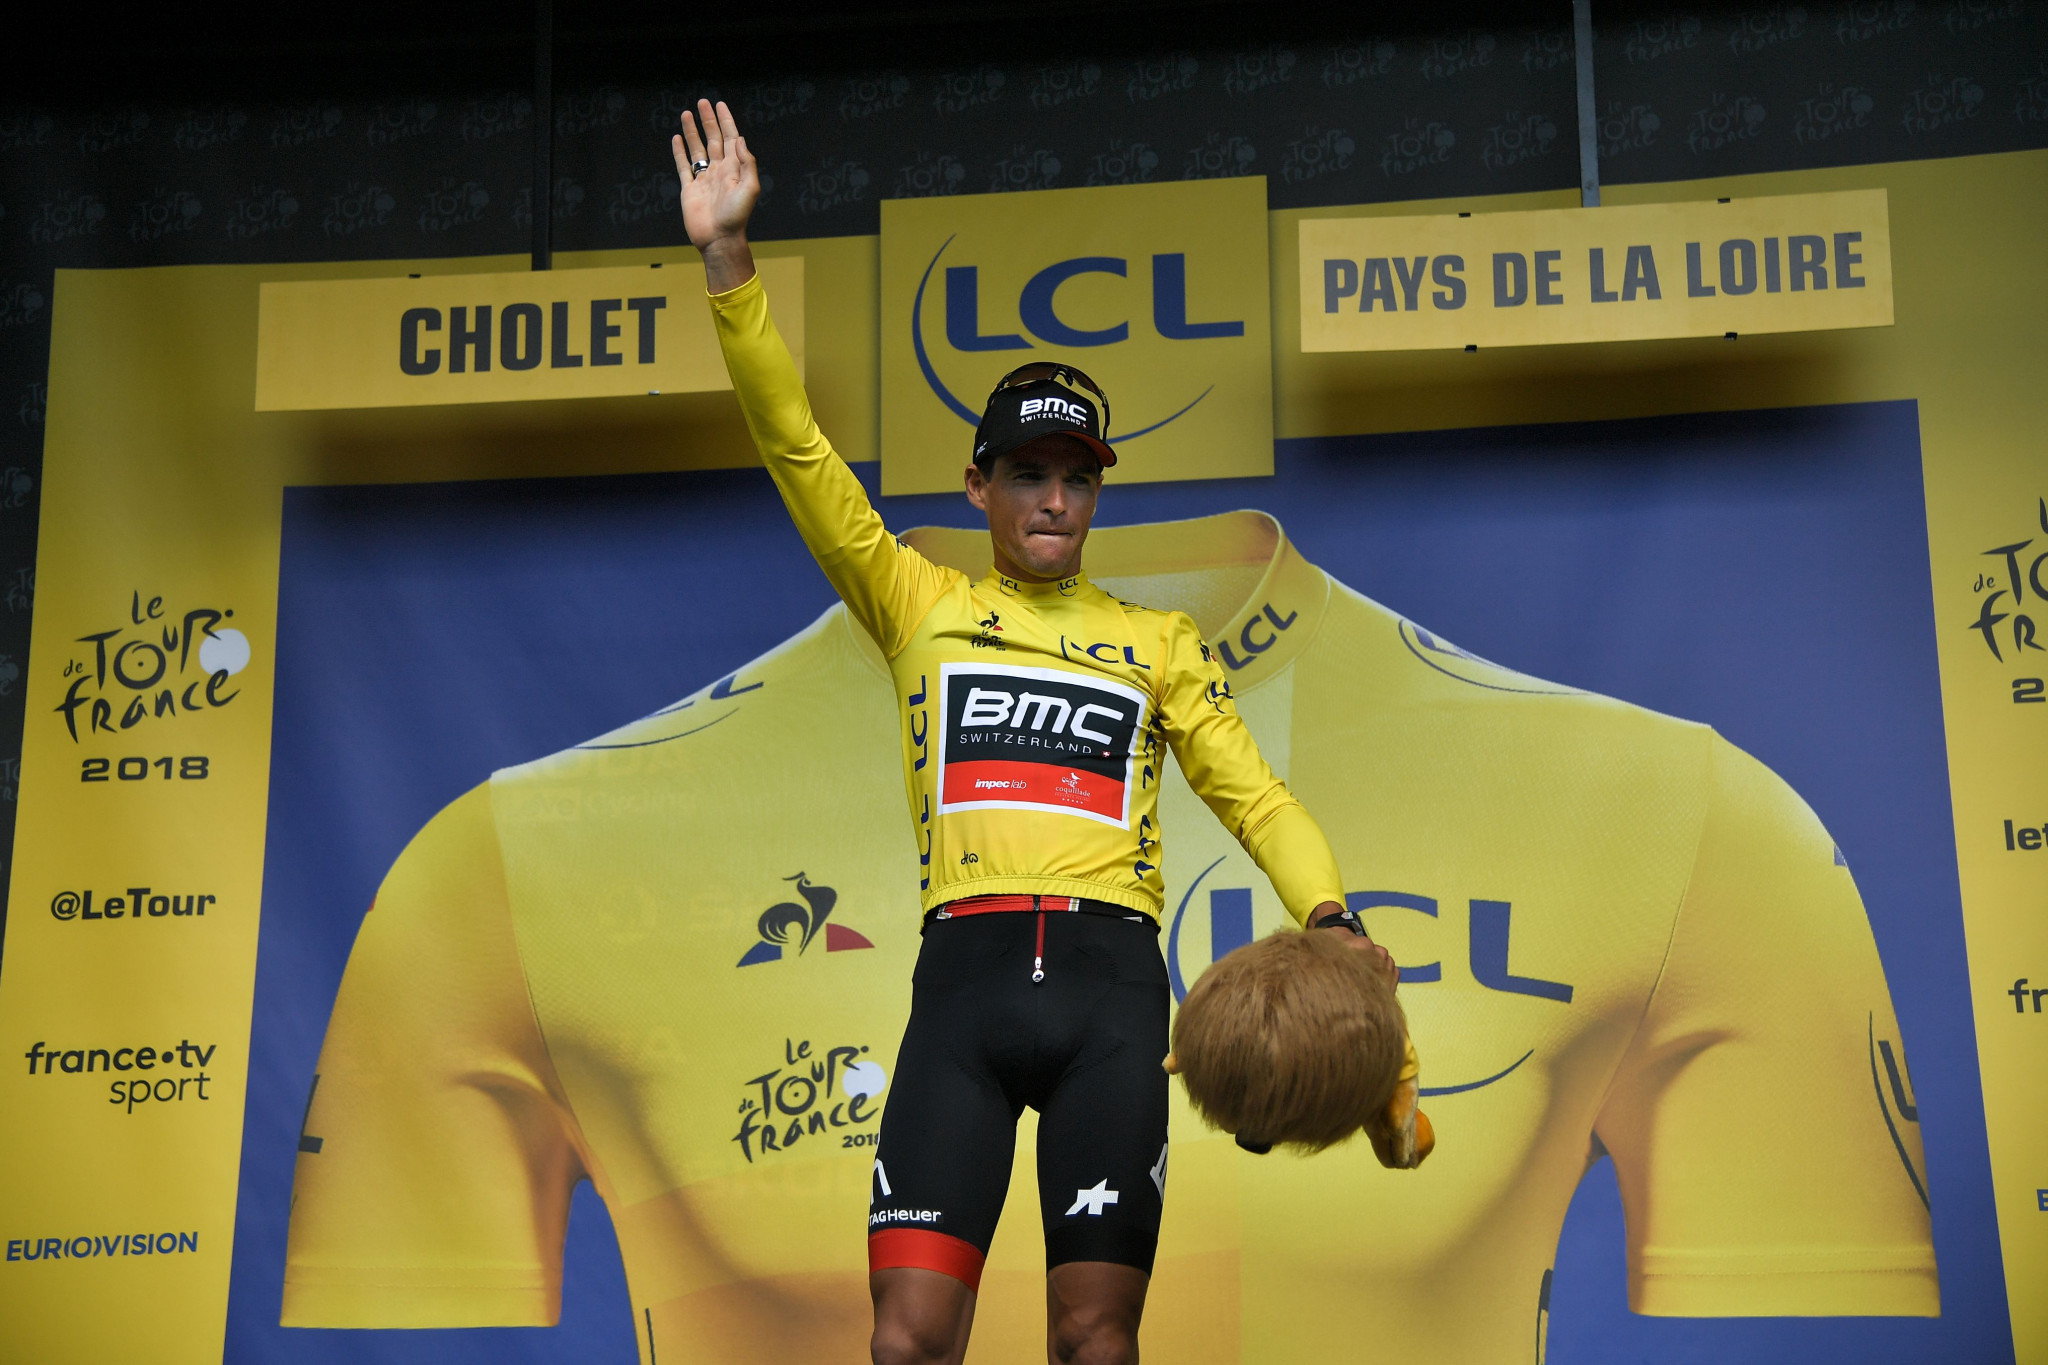 Olympic champion takes Tour de France yellow jersey in team time trial